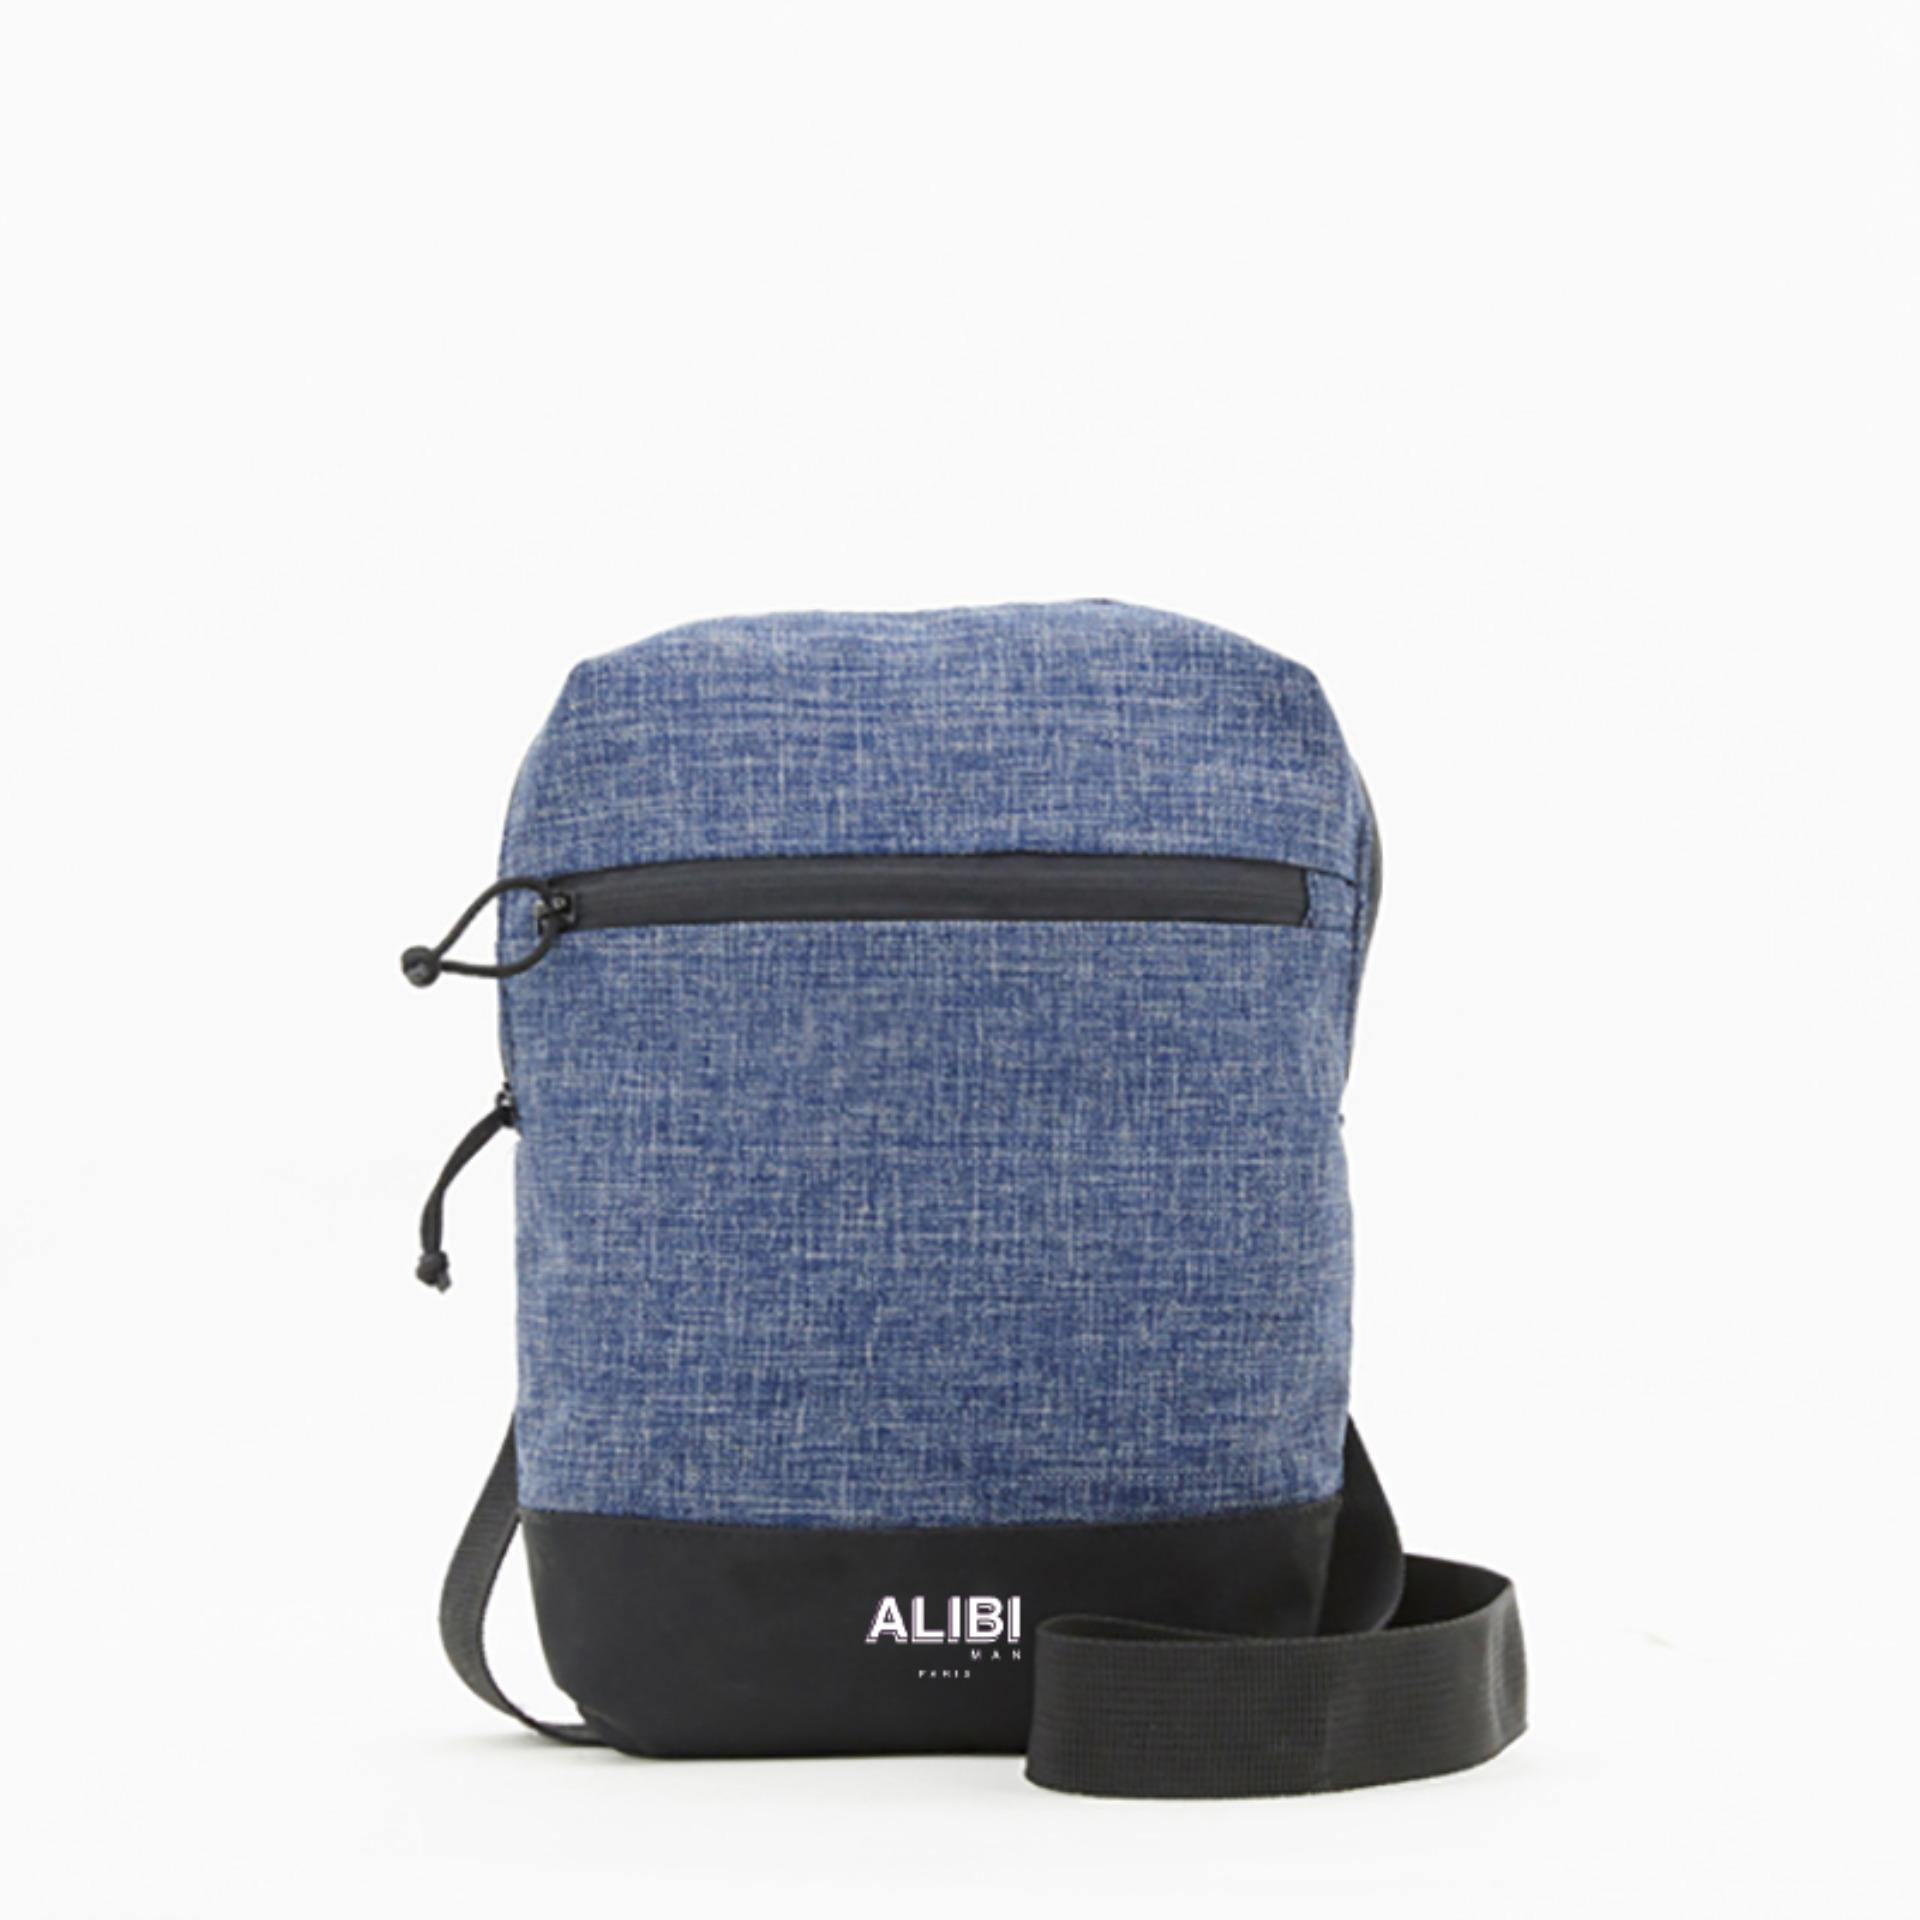 Alibi Paris Valentino Bag Alibi Paris Diskon